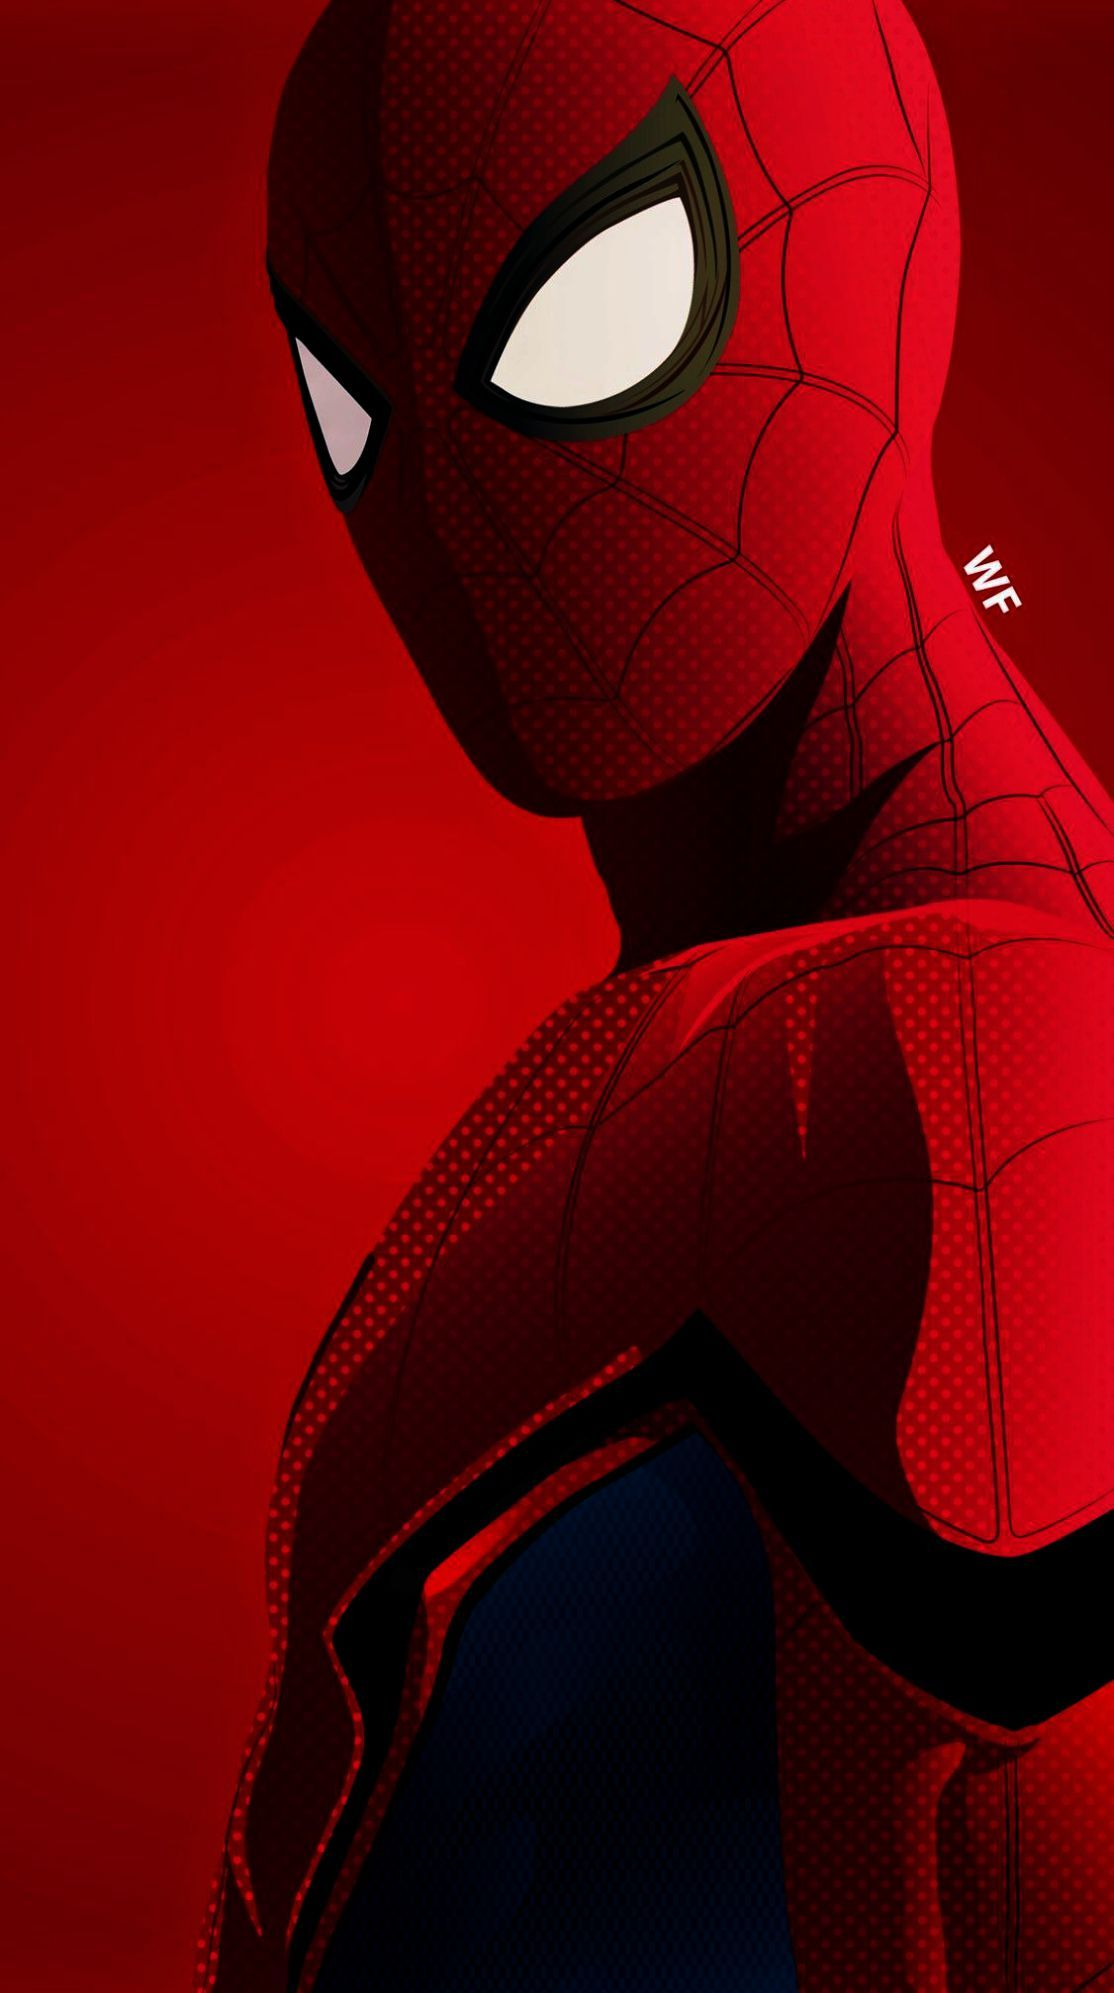 Deadpool Hd Wallpaper For Iphone Xs Max Wallpaper For